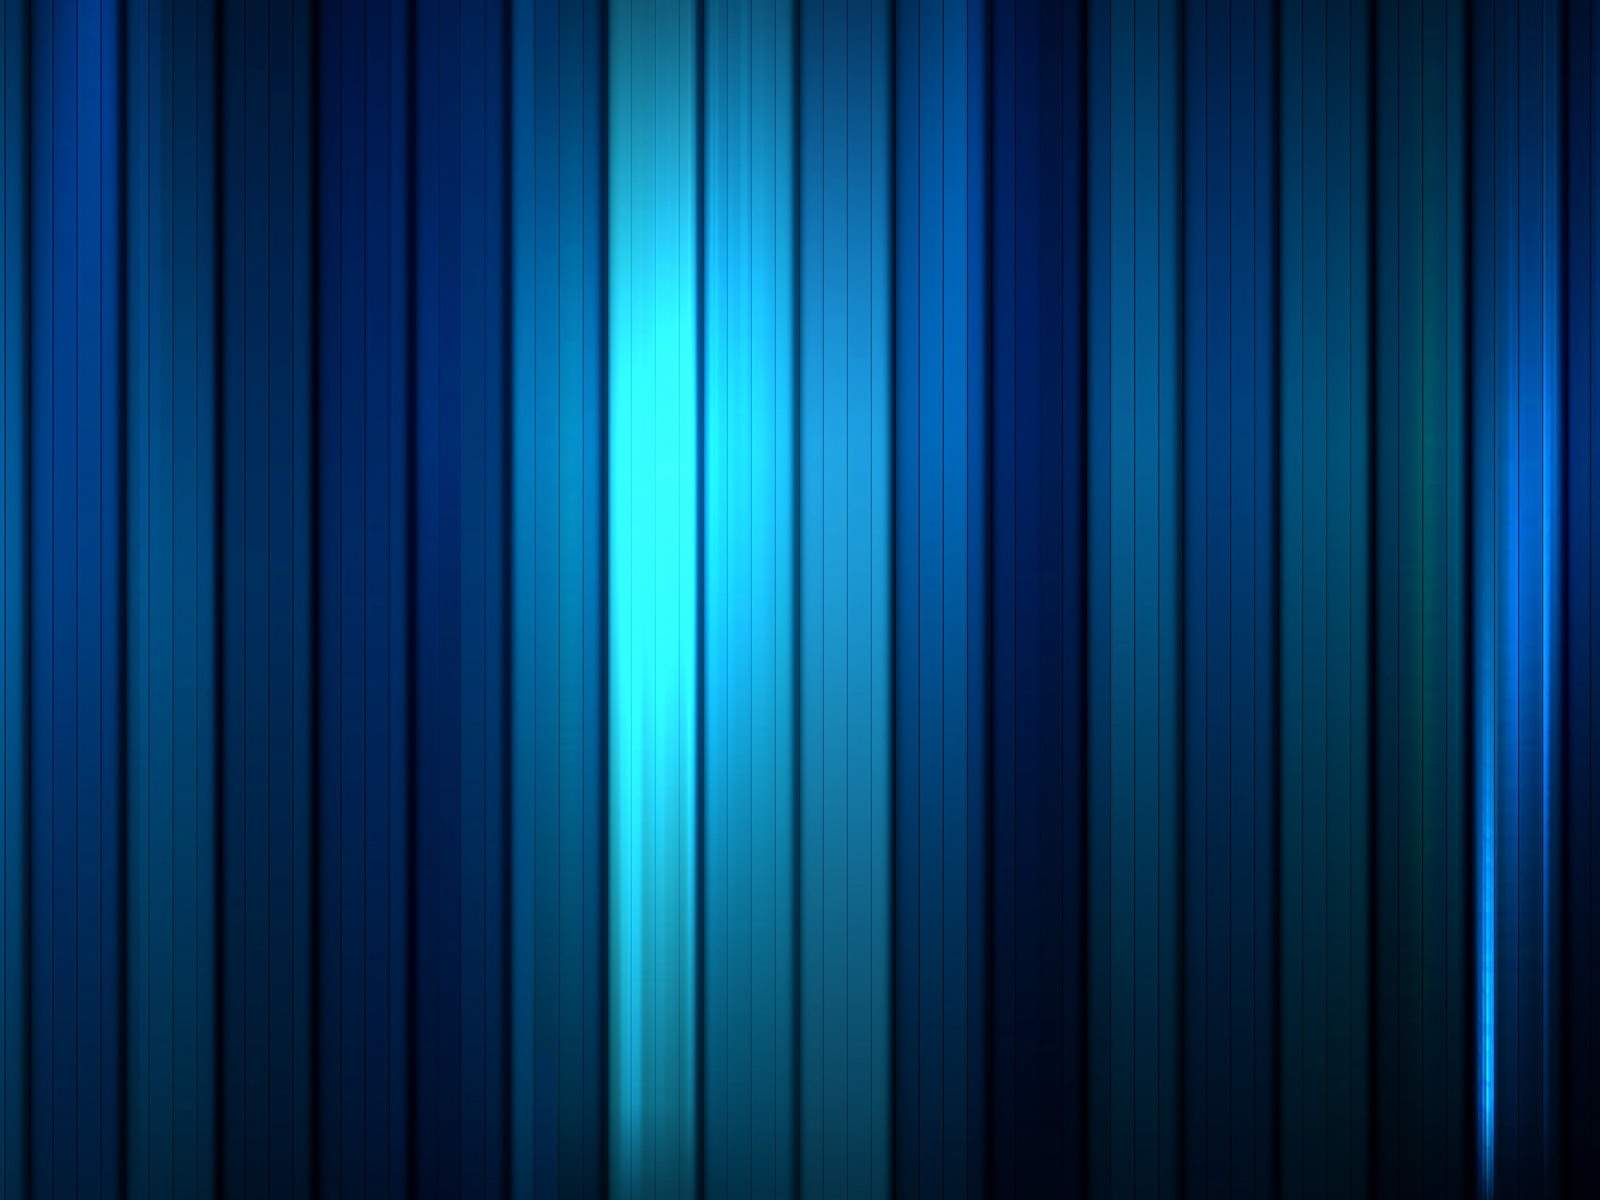 Black and White Wallpapers Blue Vertical Stripes Wallpaper 1600x1200